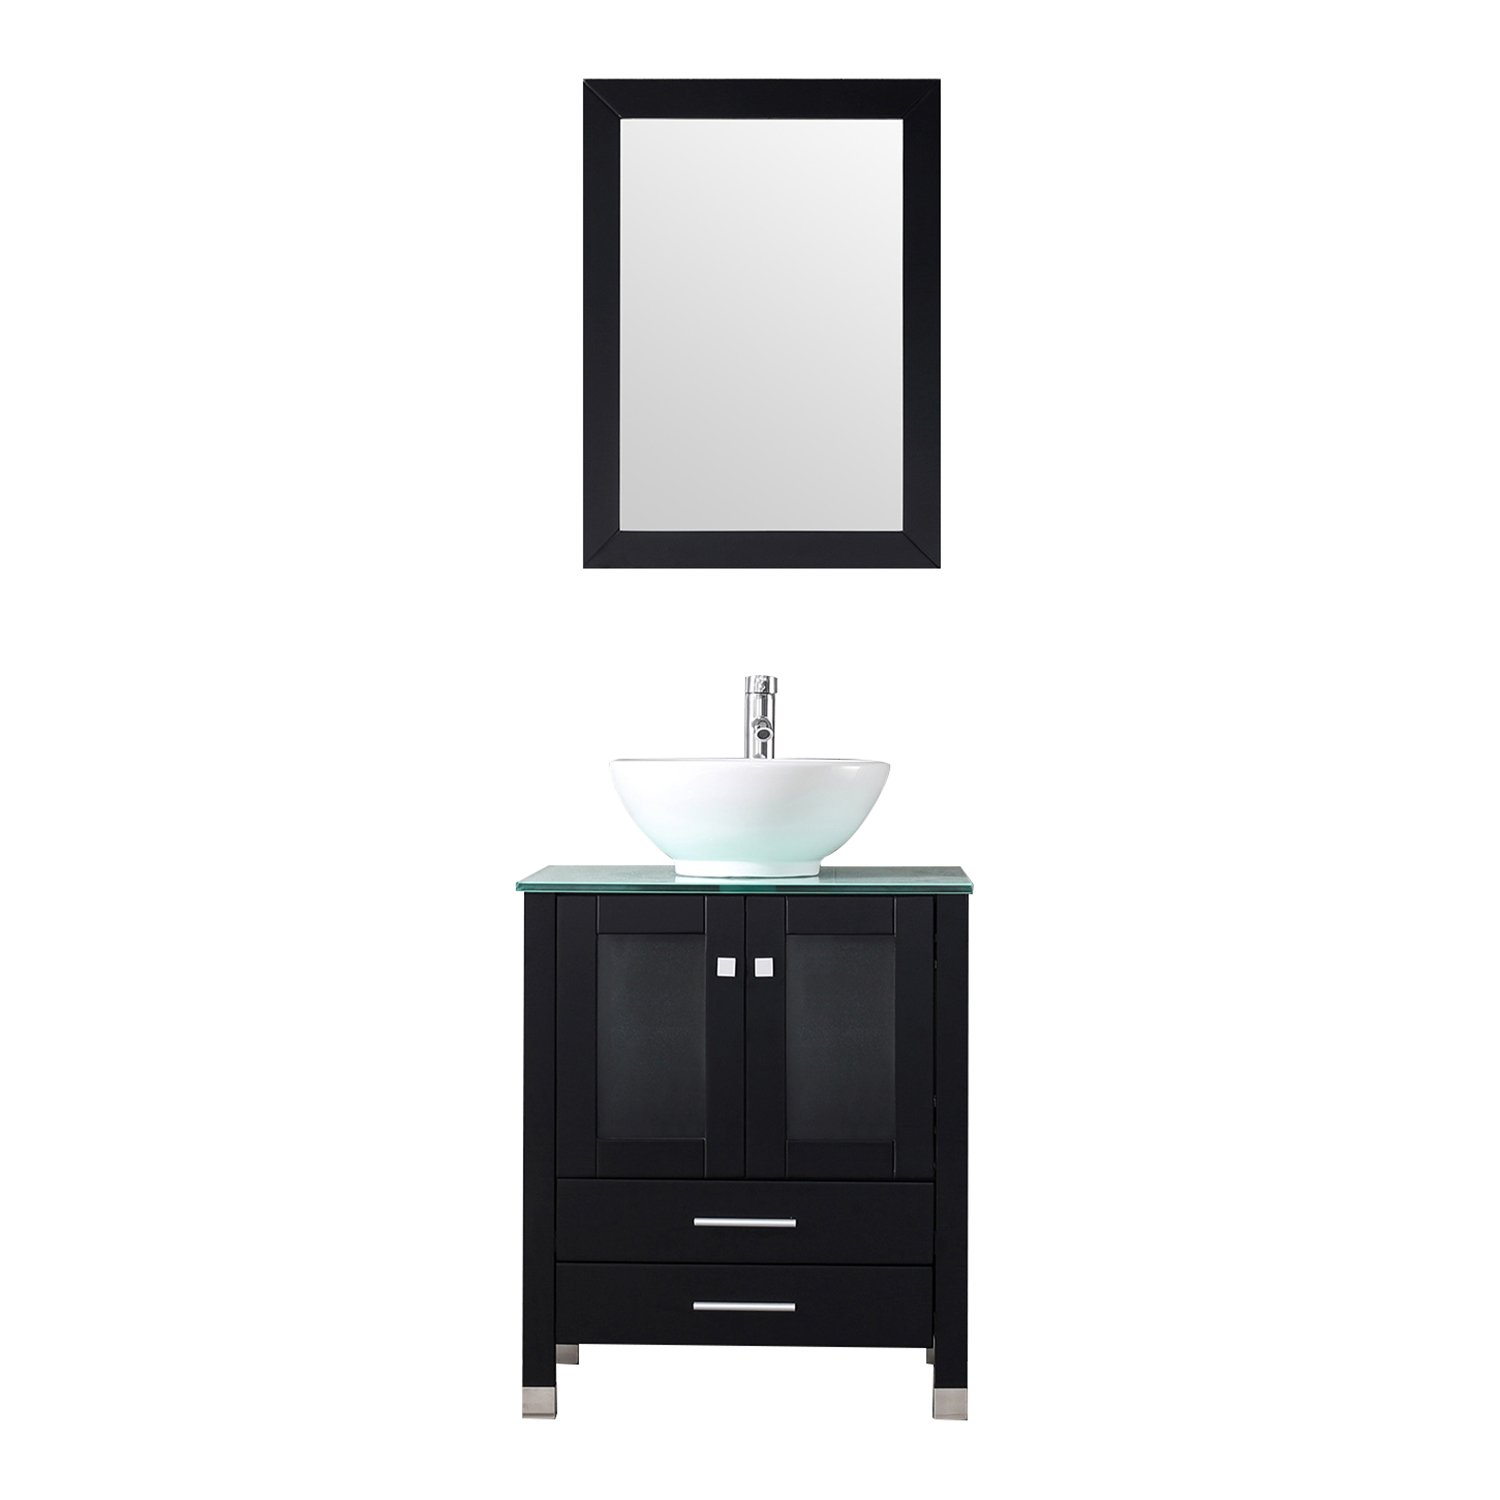 Bathjoy 24 Modern Single Wood Bathroom Vanity Cabinet White Square